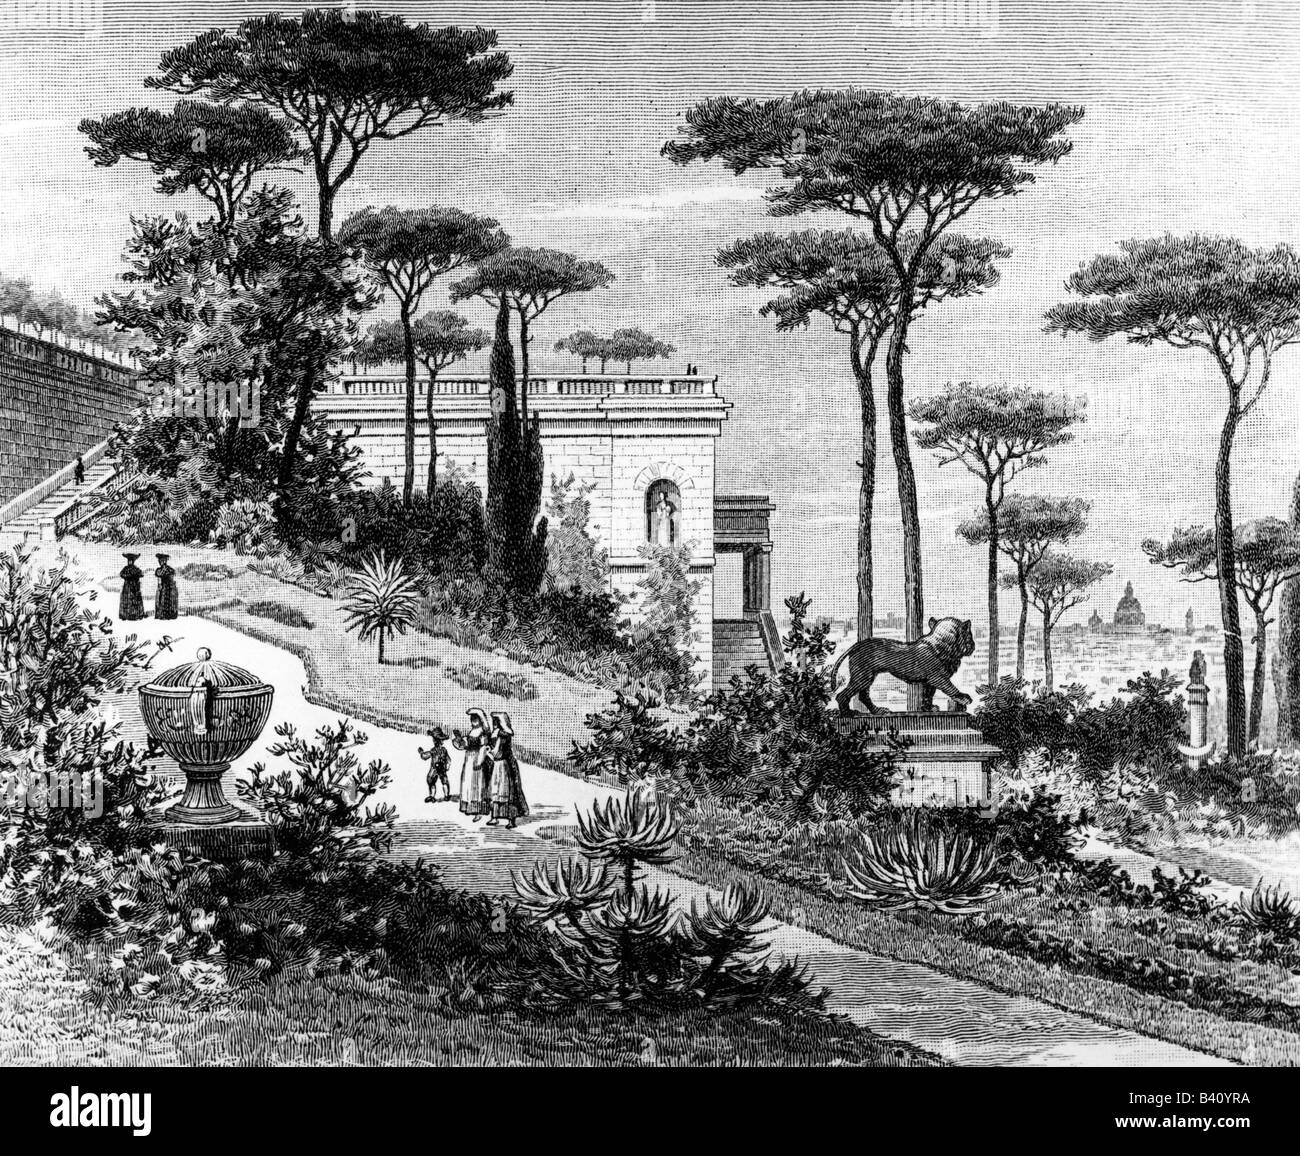 architecture, gardens, park on the Pincian Hill in Rome, view, wood engraving, 19th century, Italy, Monte Pincio, - Stock Image